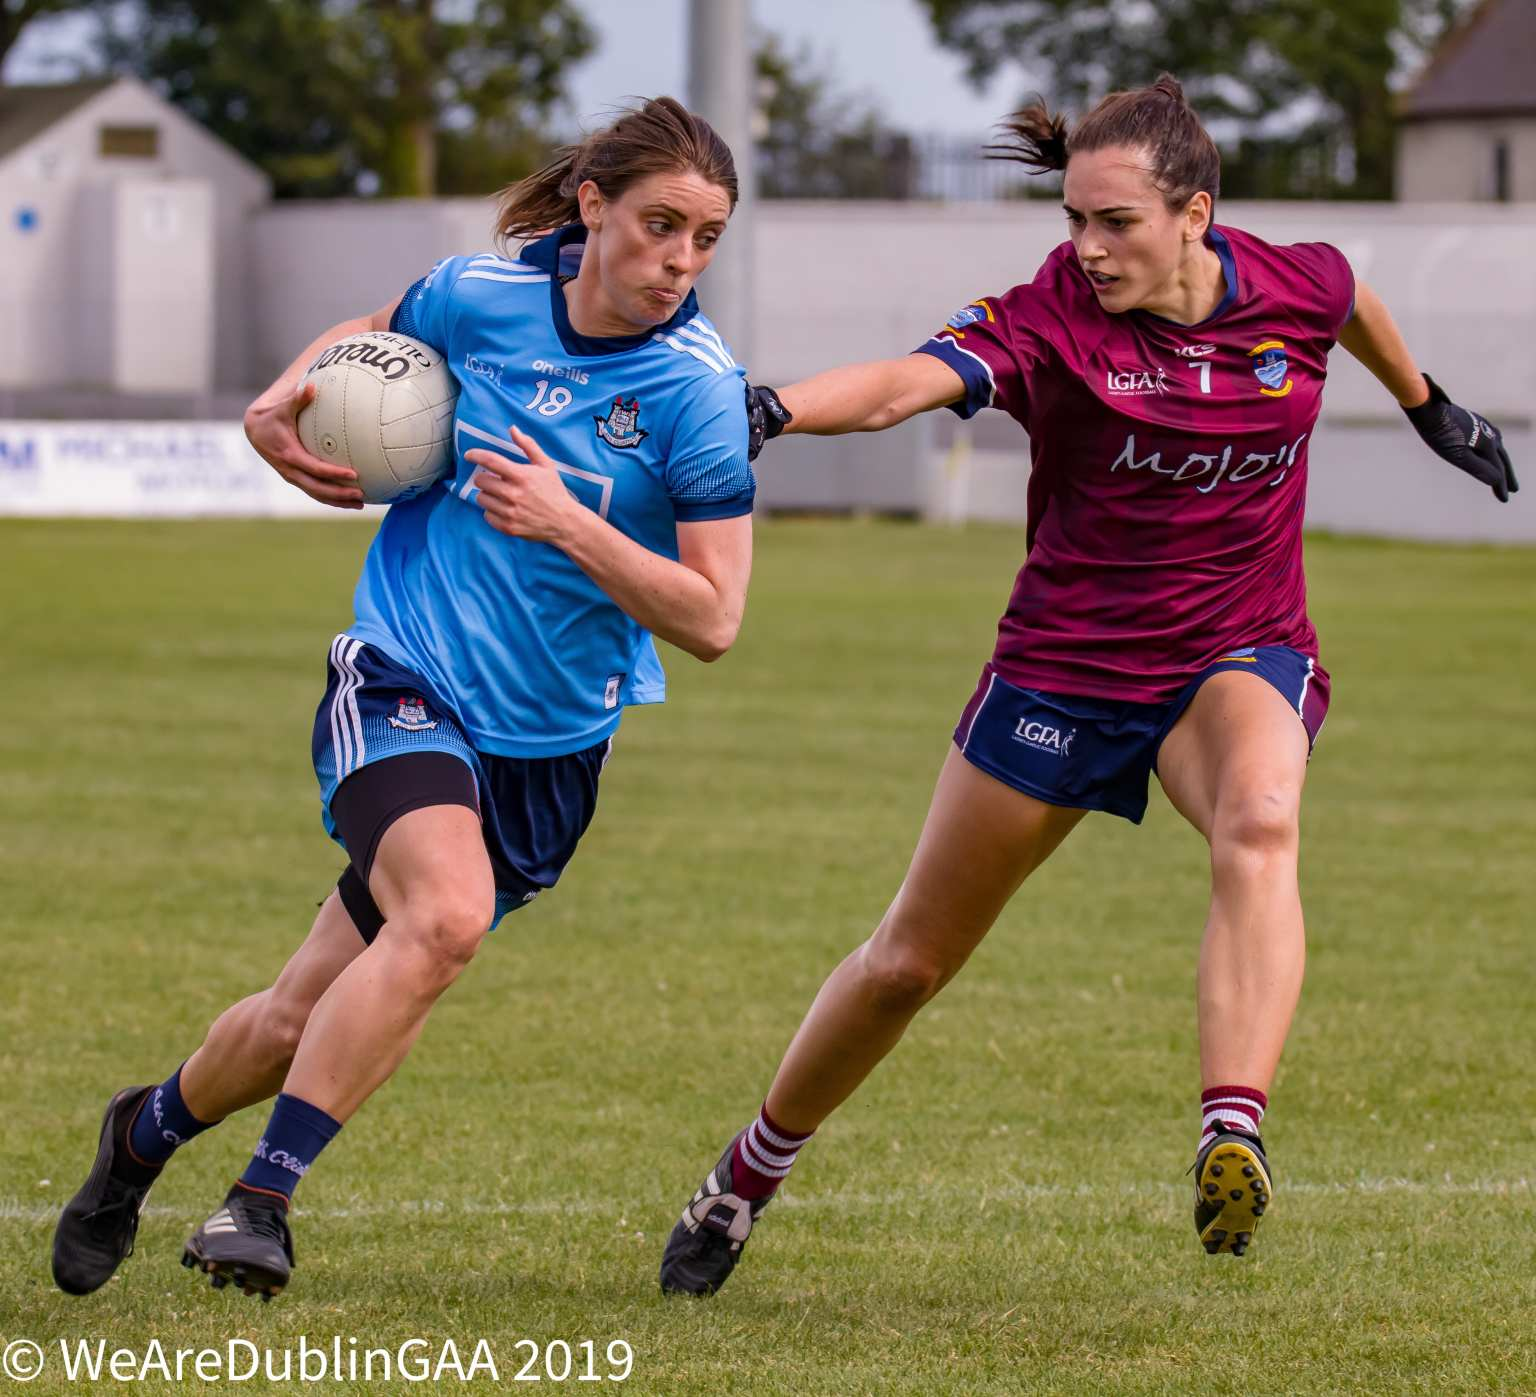 Dublin's Oonagh Whyte Is Tackled By Westmeath's Karen McDermott